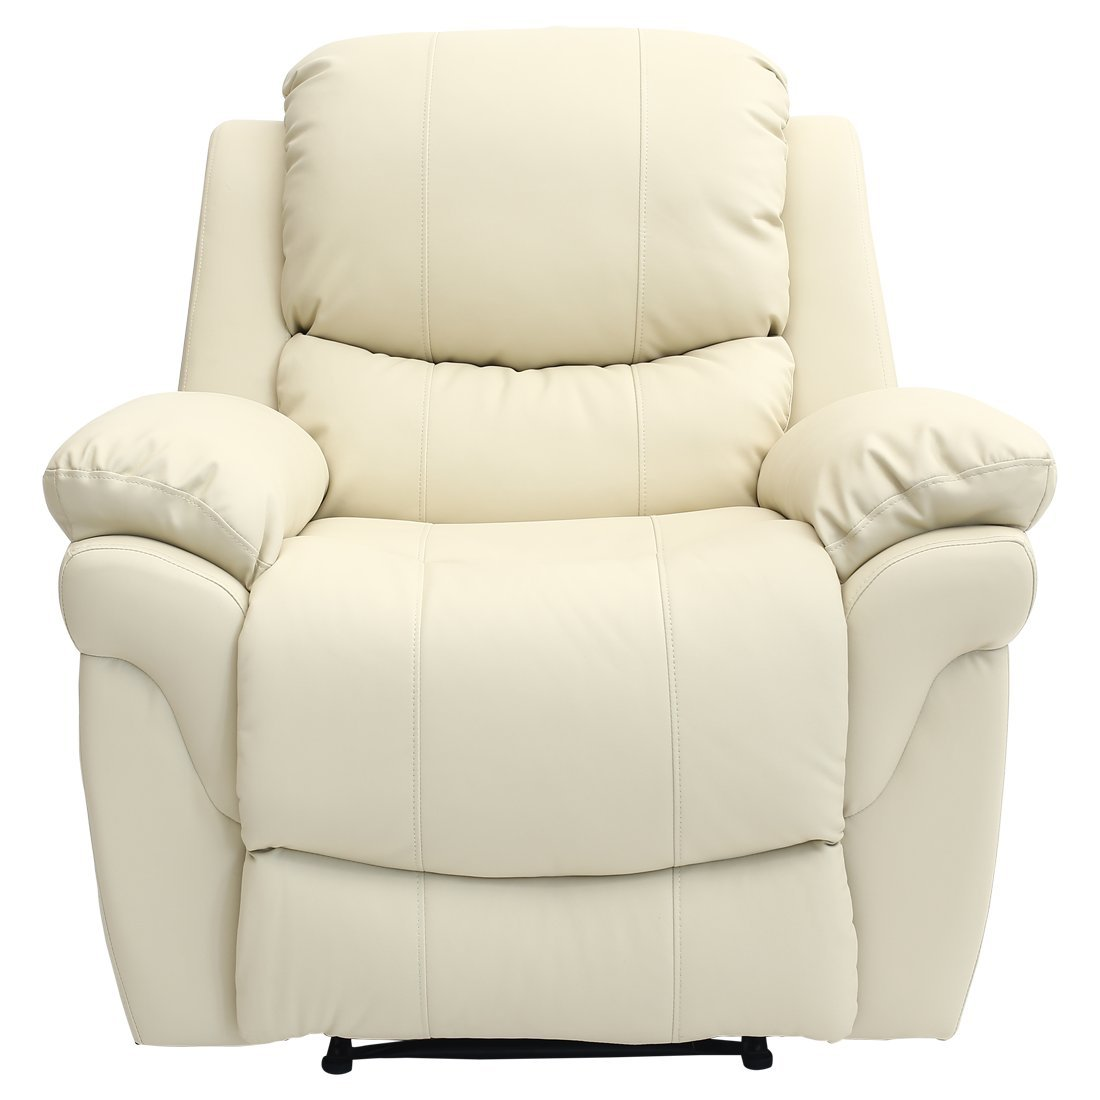 MADISON LEATHER RECLINER ARMCHAIR SOFA HOME LOUNGE CHAIR RECLINING GAMING  (Cream): Amazon.co.uk: Kitchen U0026 Home